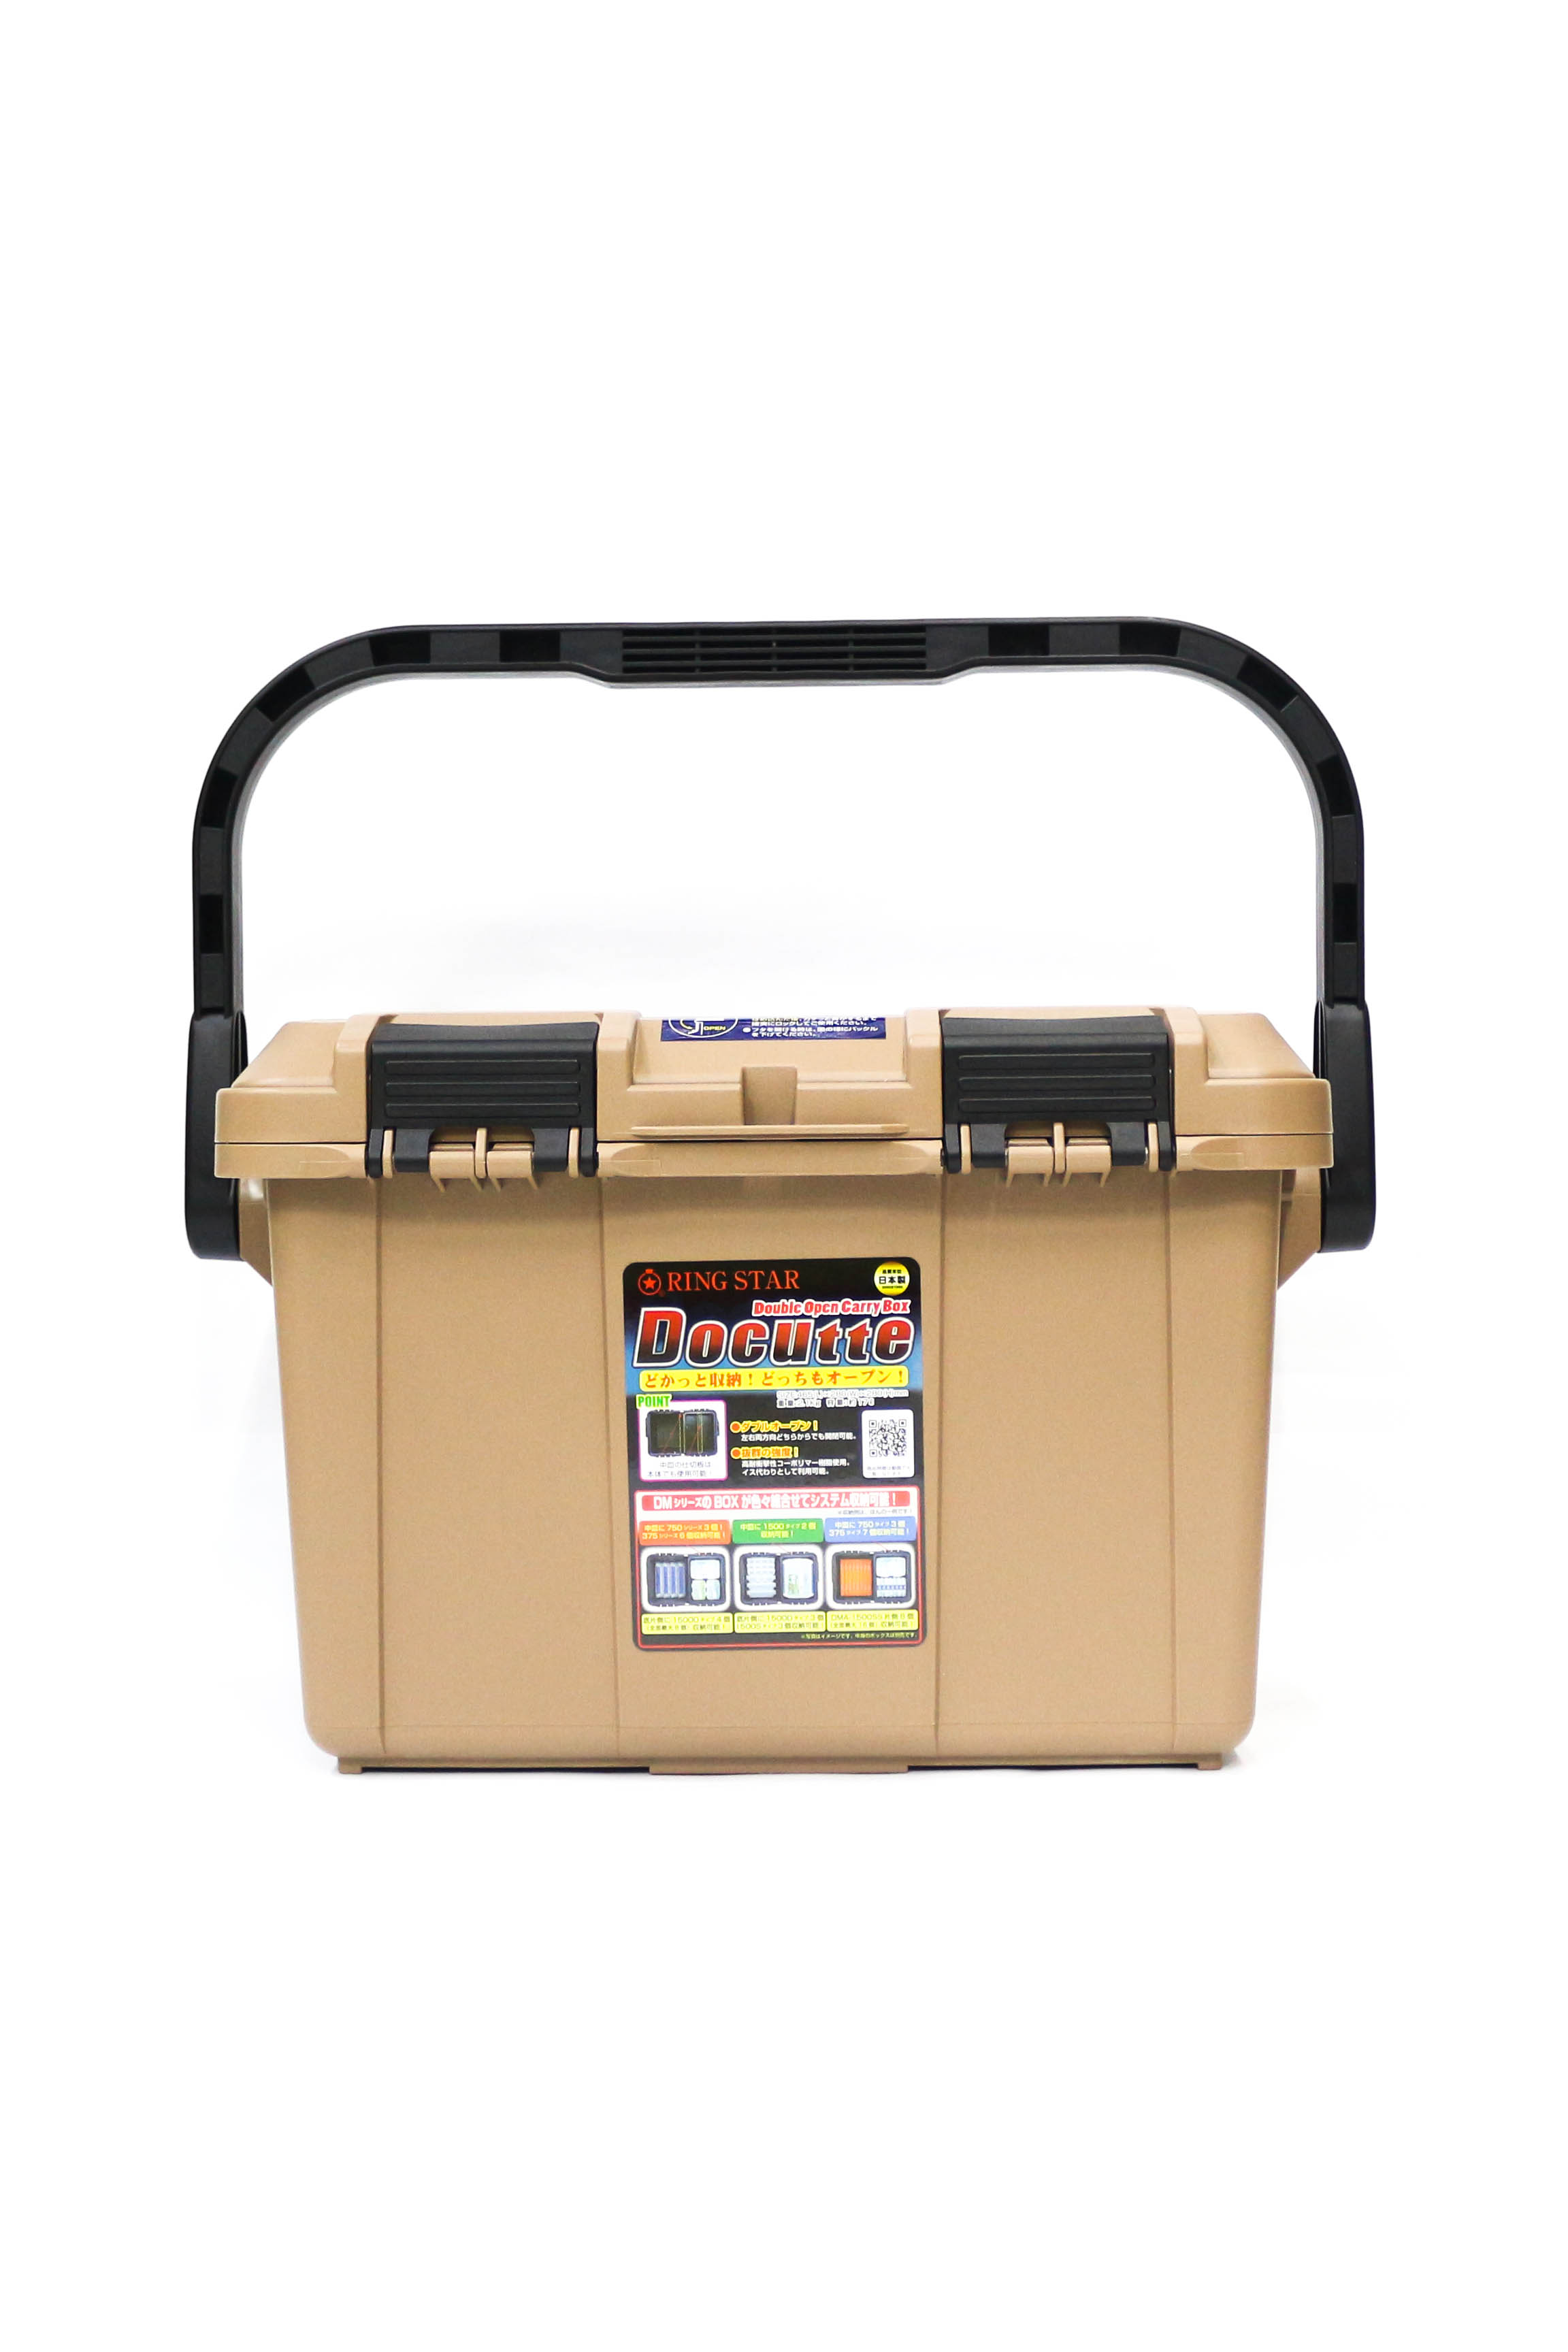 Sale Ring Star Docutte D-4500 RB Tackle Box 465 x 280 x 280 mm Brown (2033)